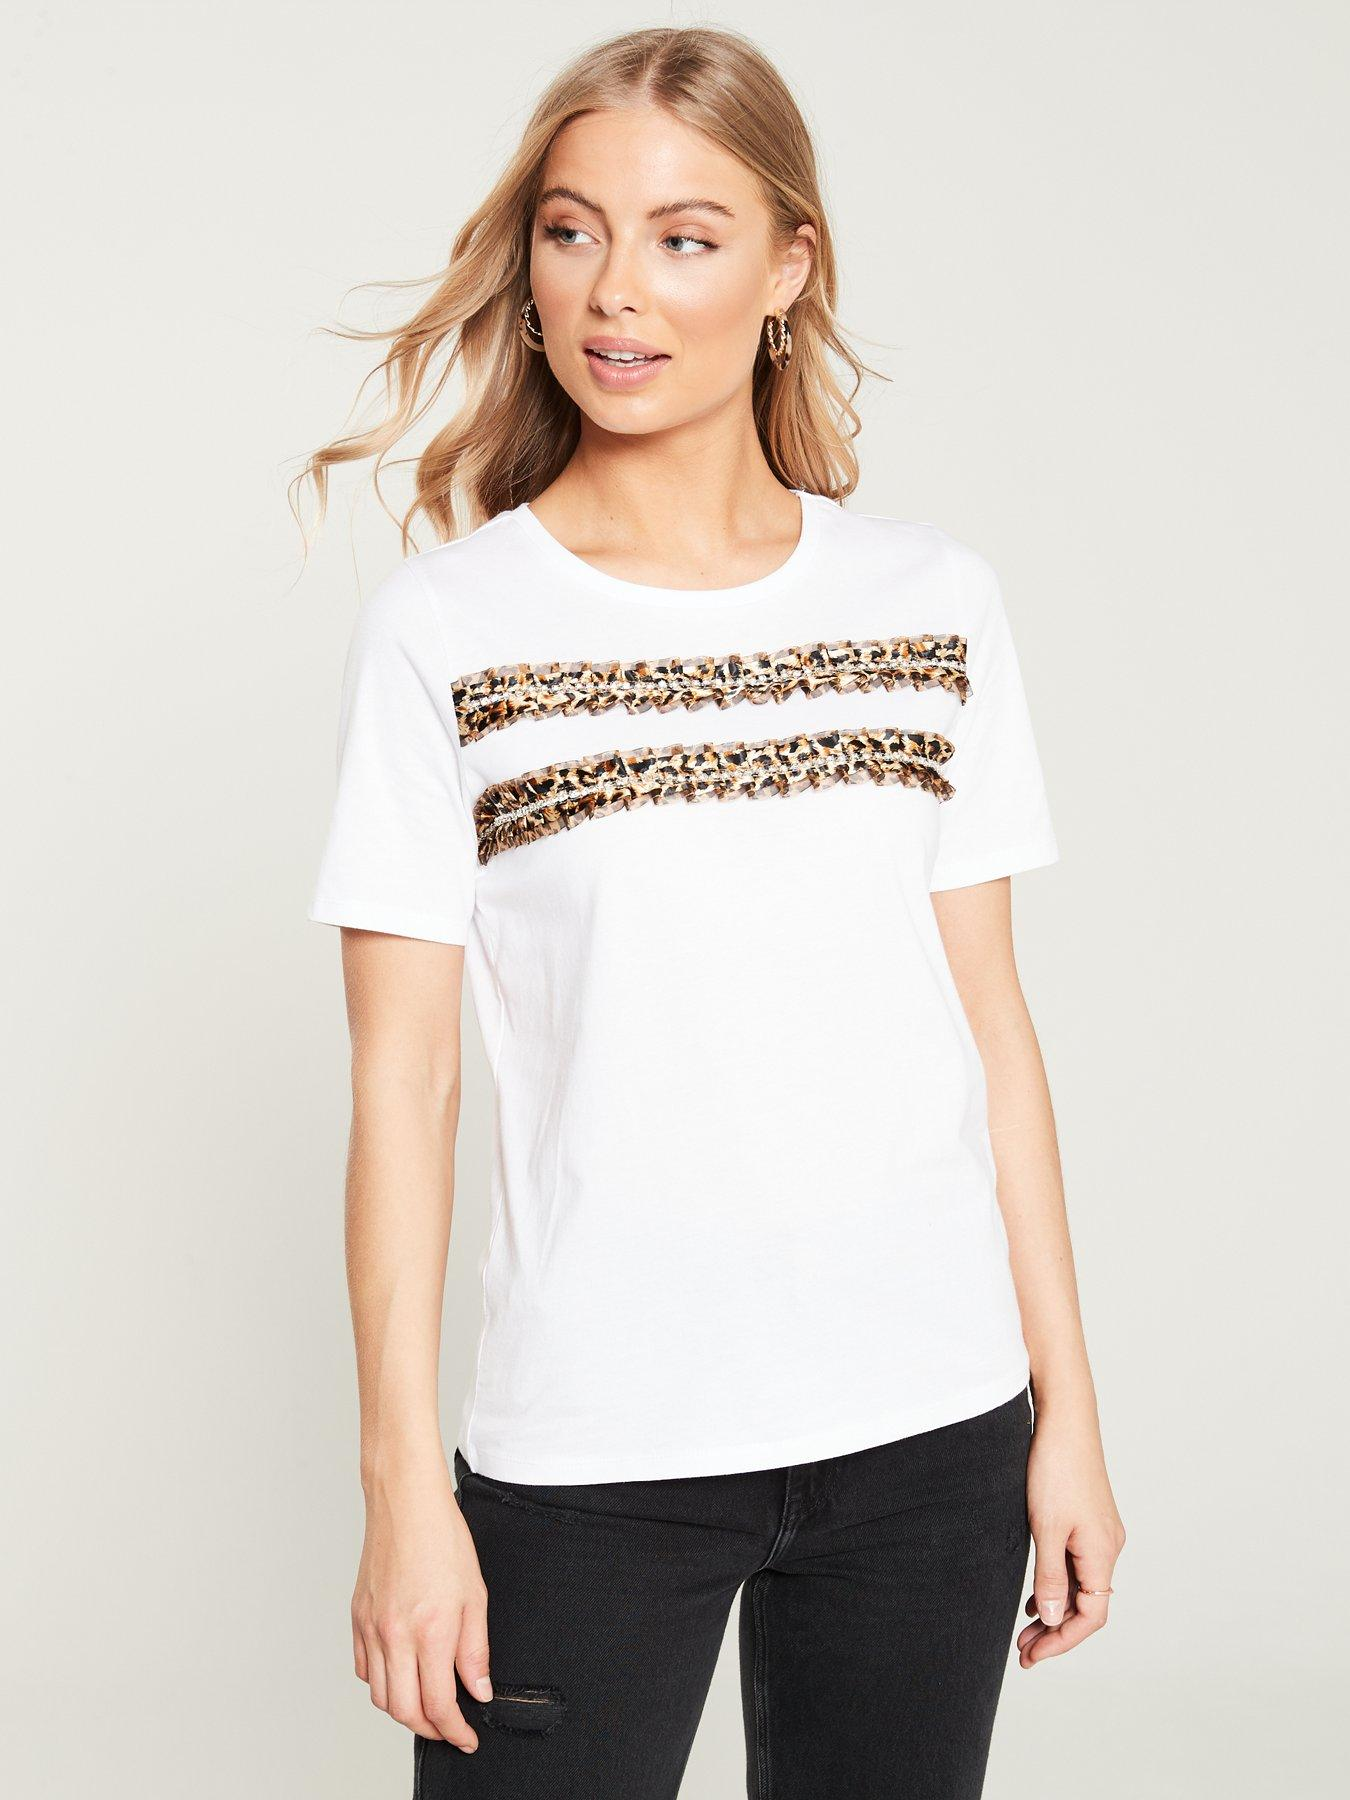 Women's Tops & T shirts | V by Very | Littlewoods Ireland